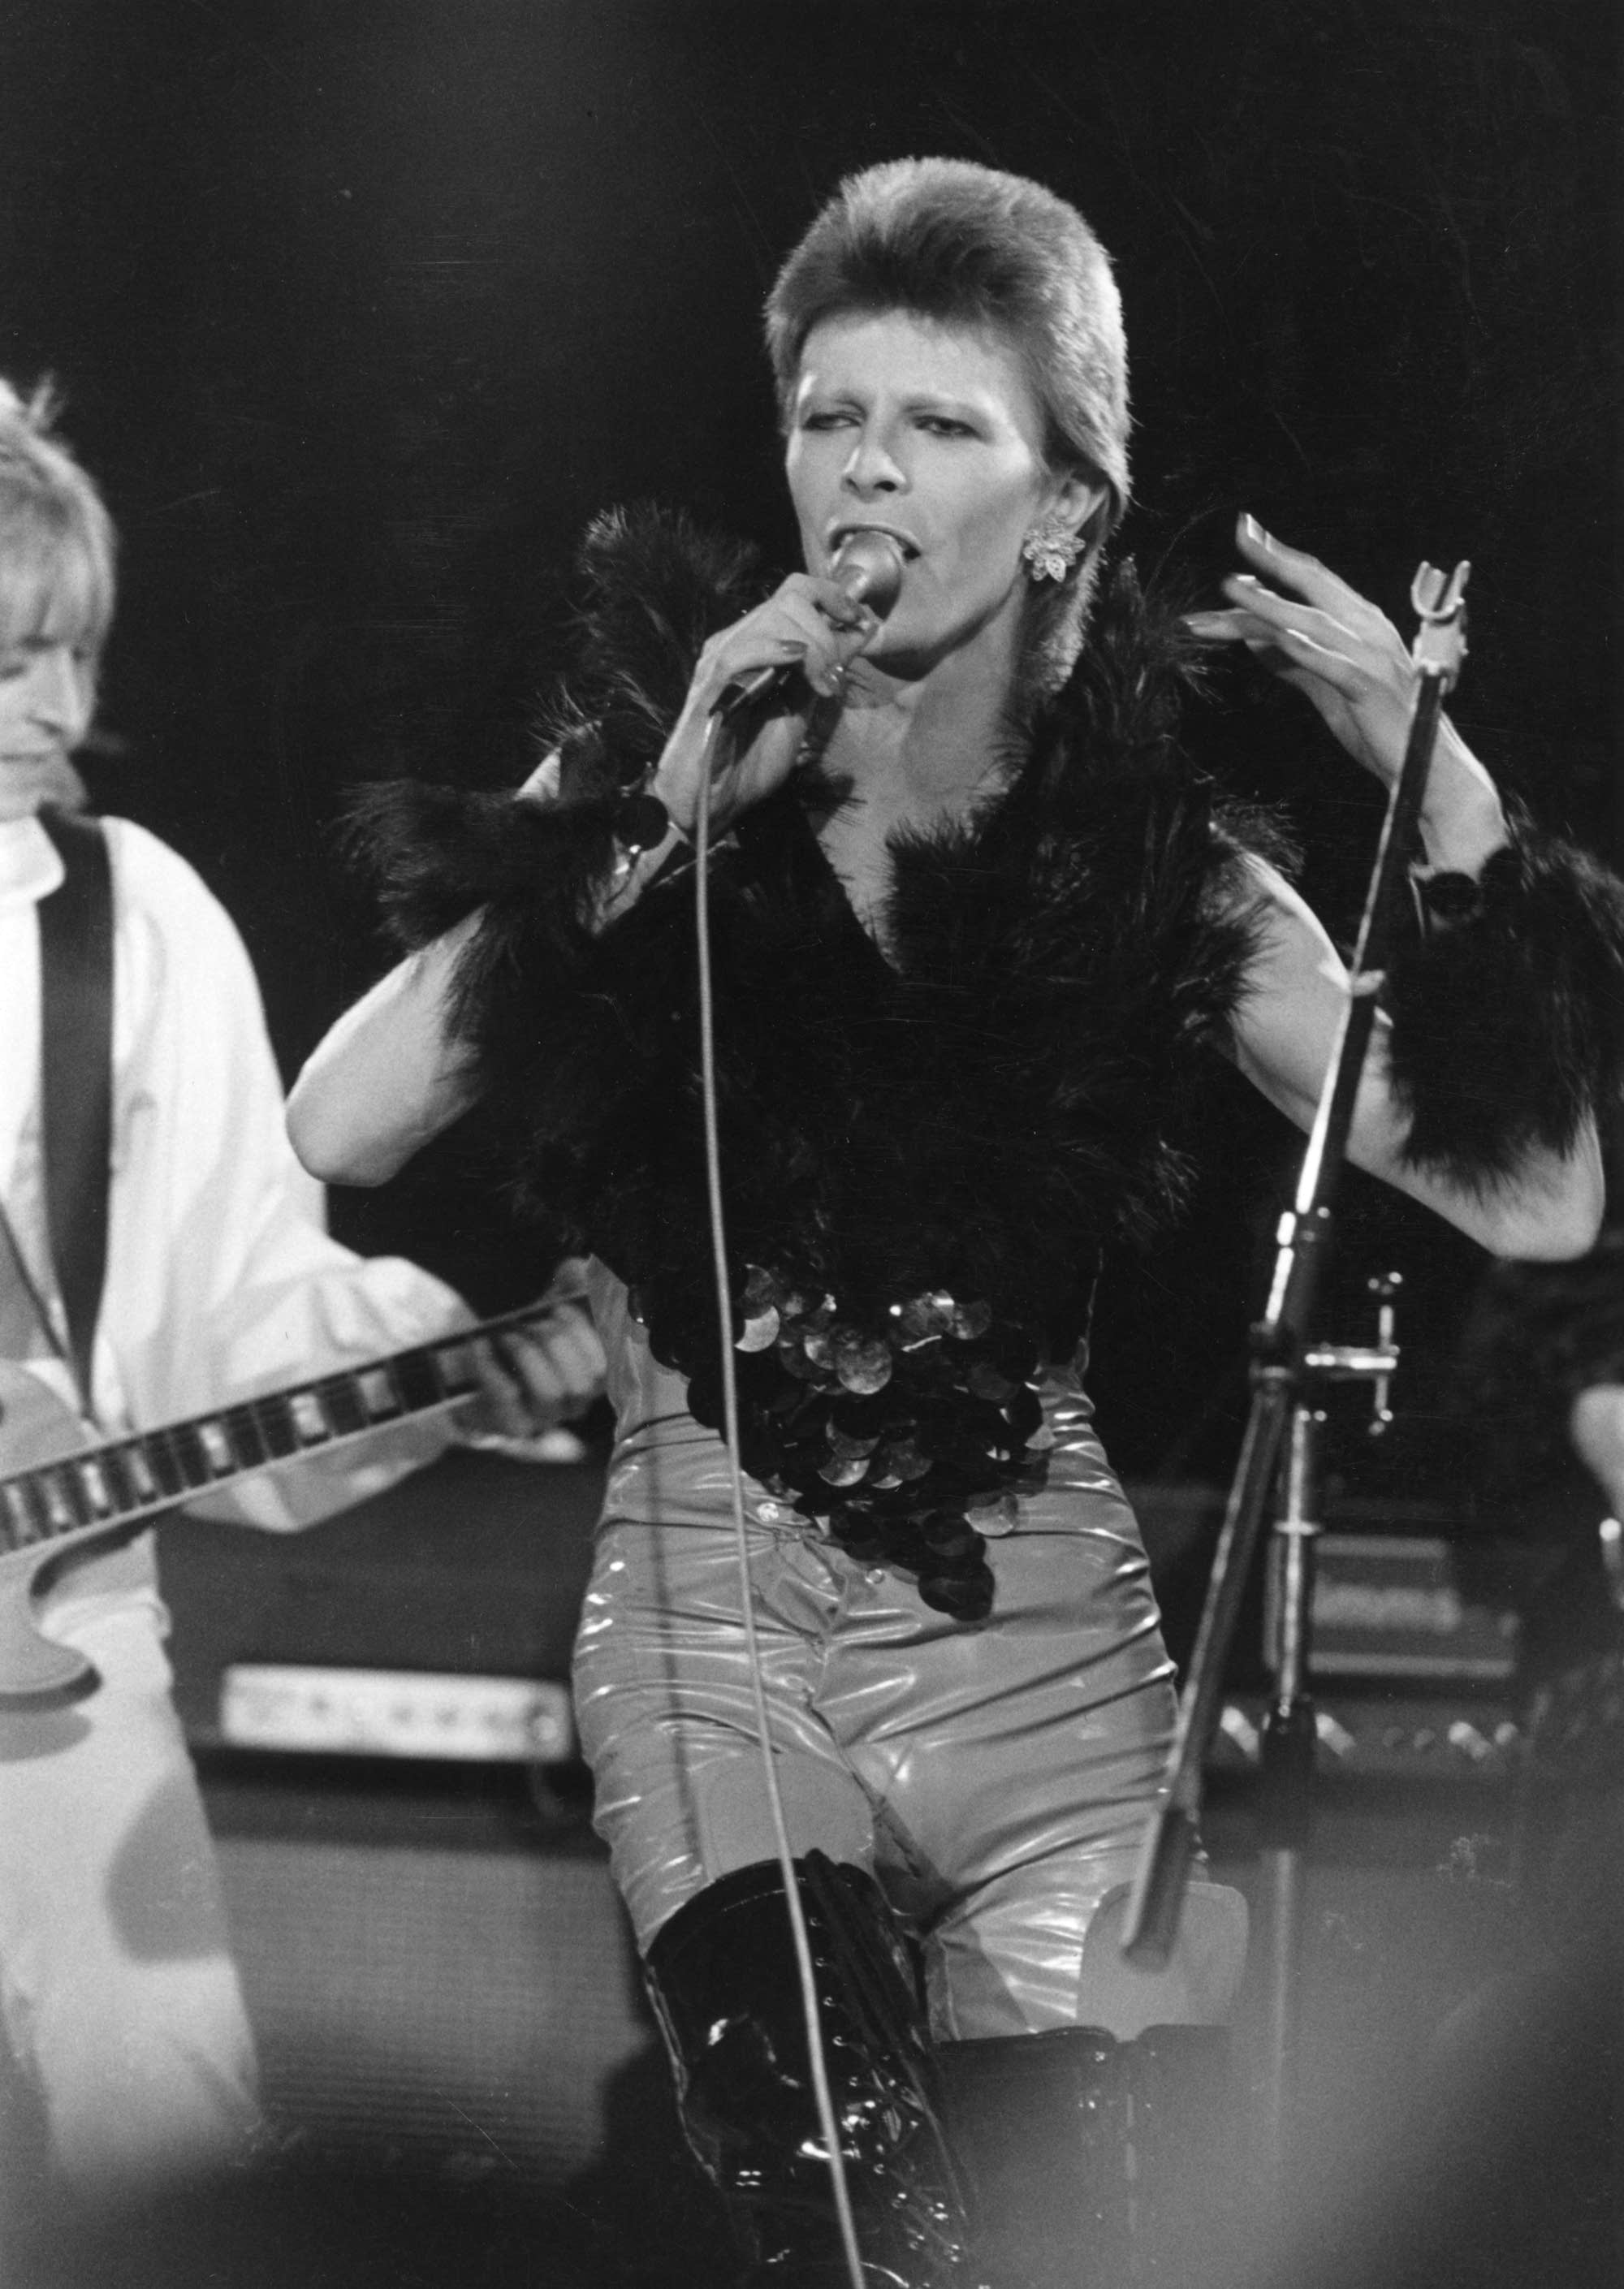 David Bowie and Mick Ronson in the 1970s